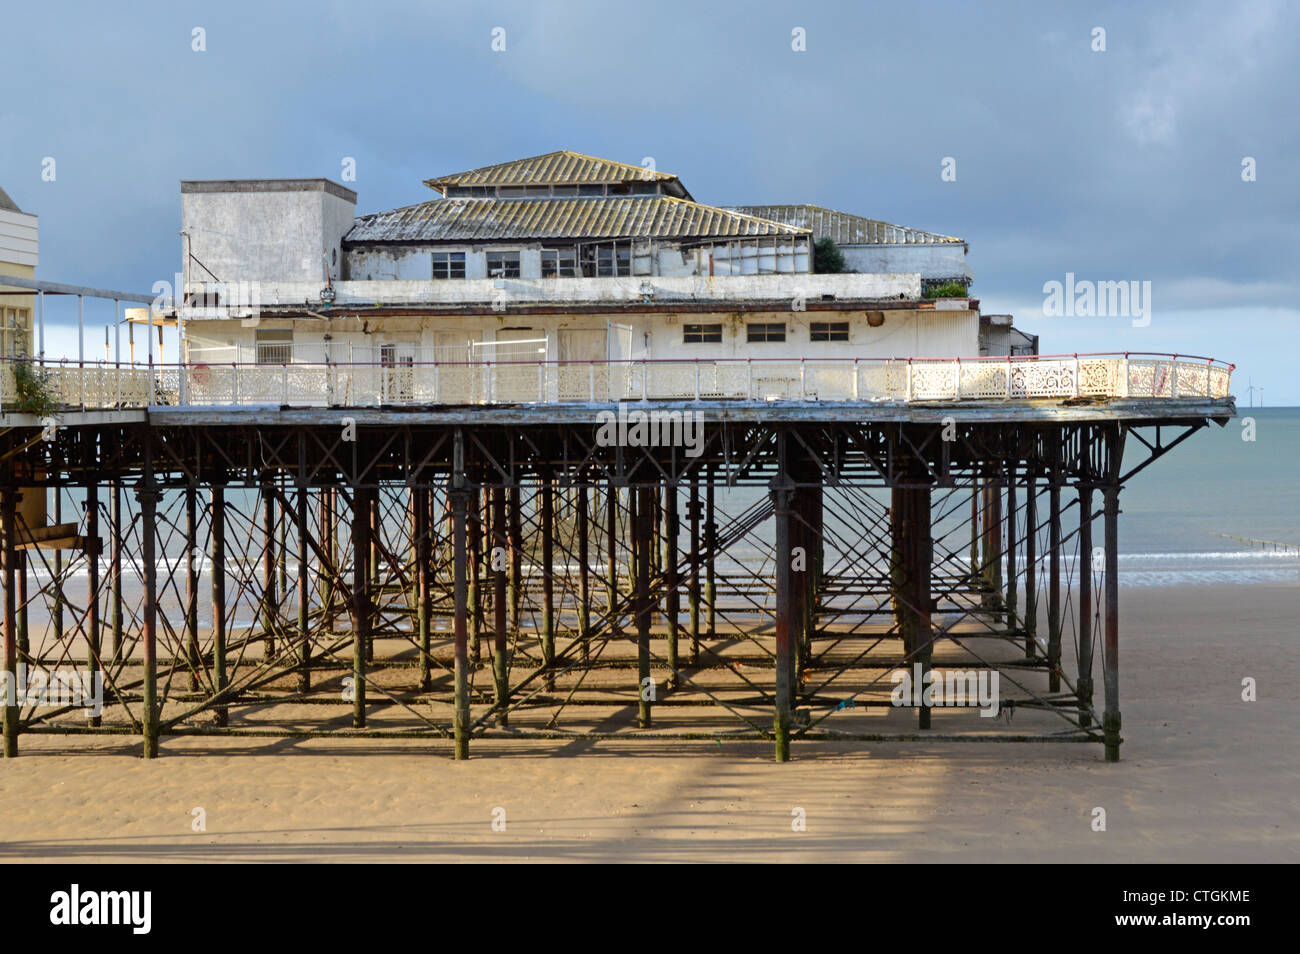 The decaying Victoria Pier on the beach at Colwyn Bay - Stock Image